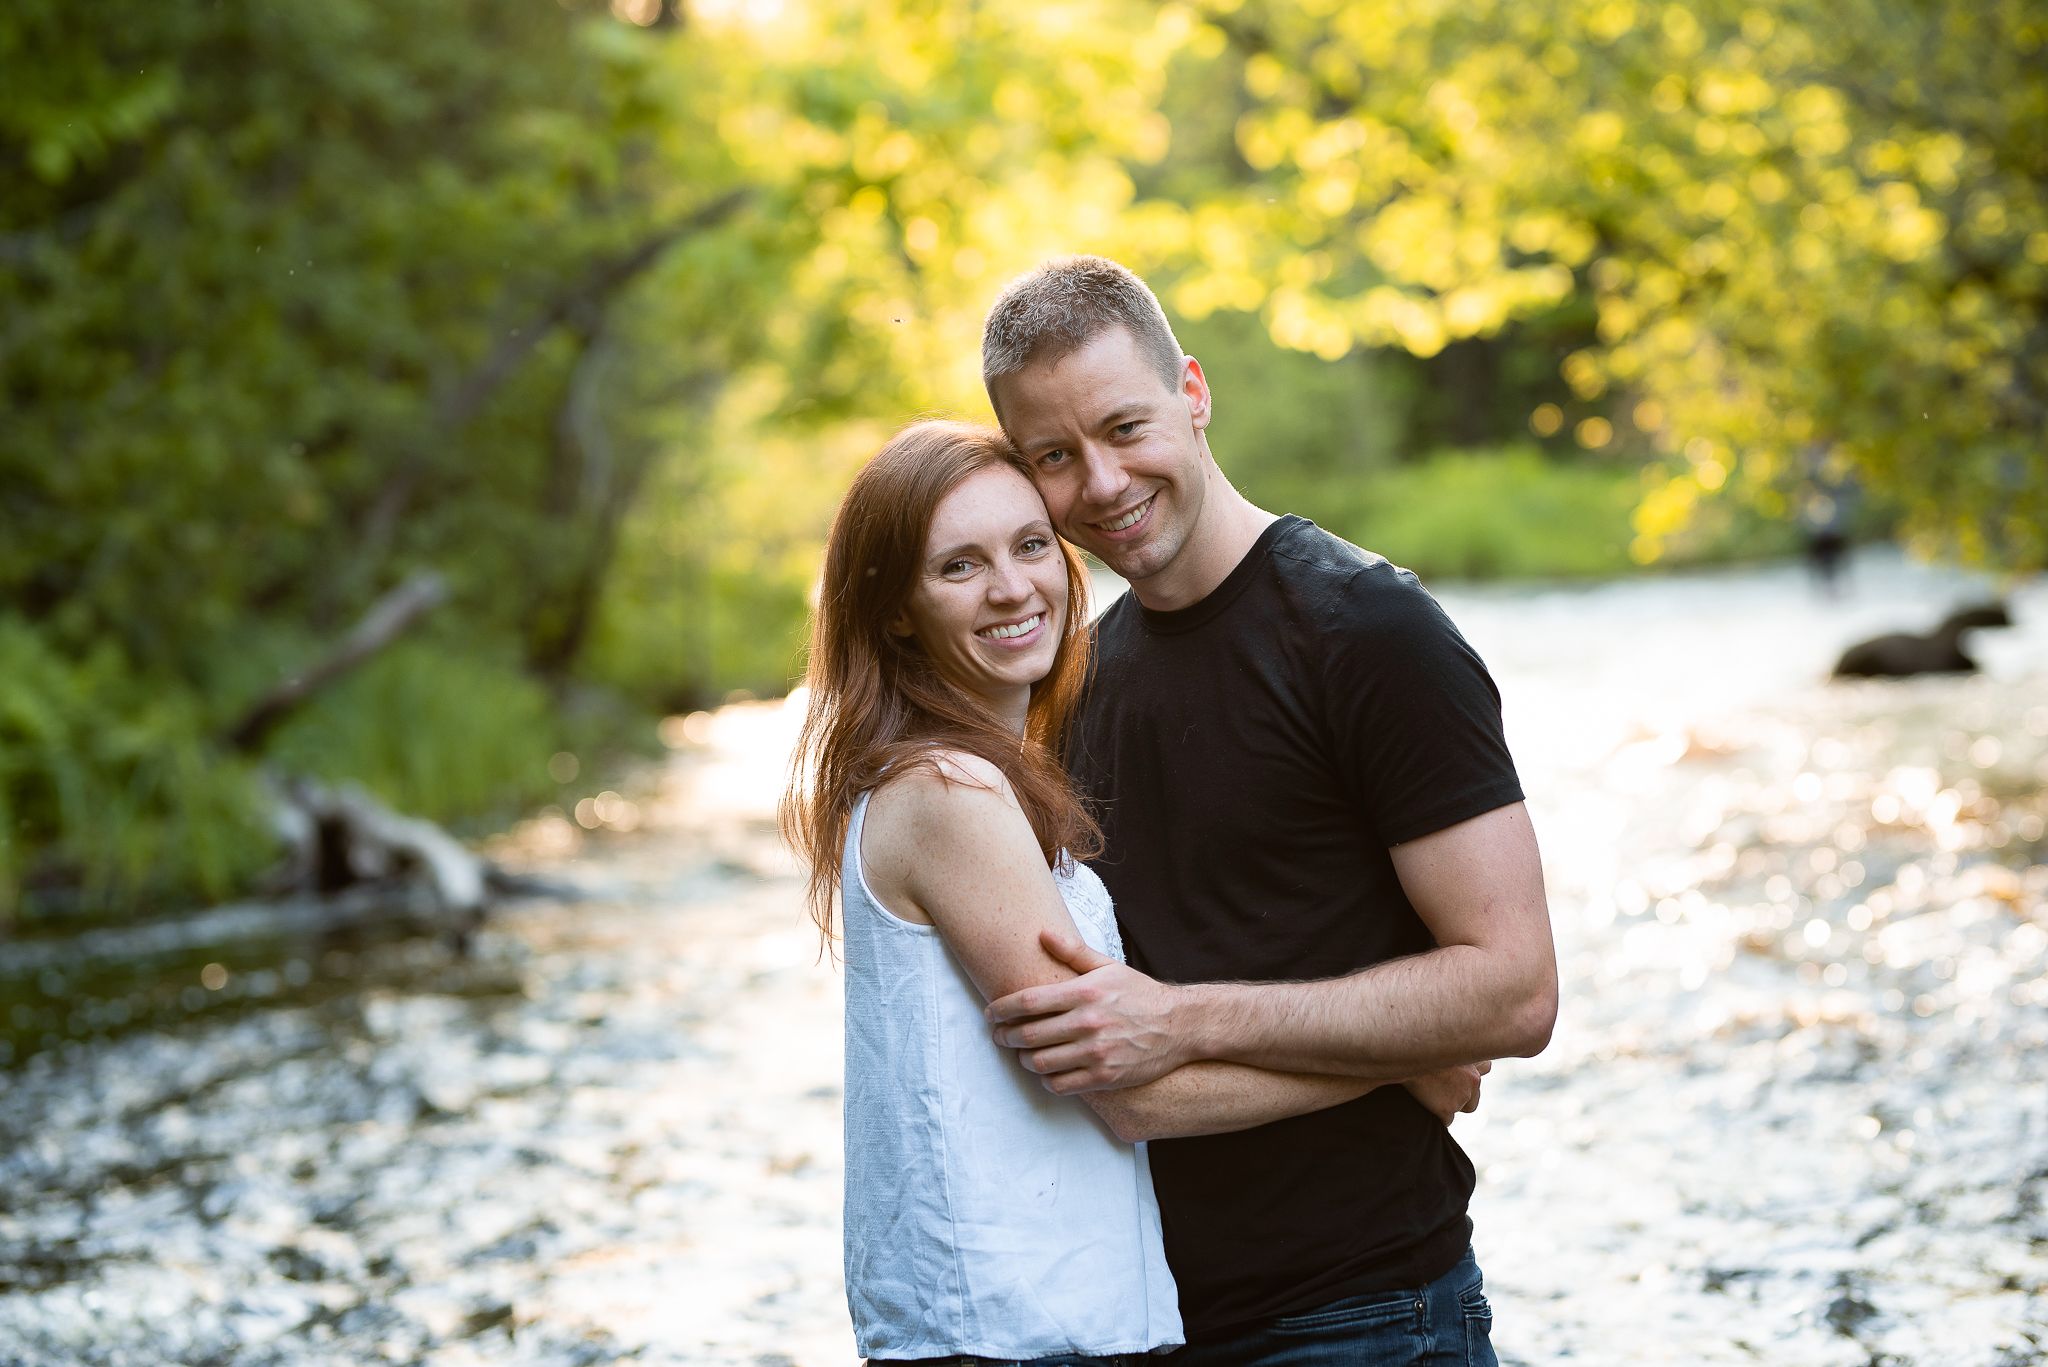 Couples423NaomiLuciennePhotography062019-Edit.jpg